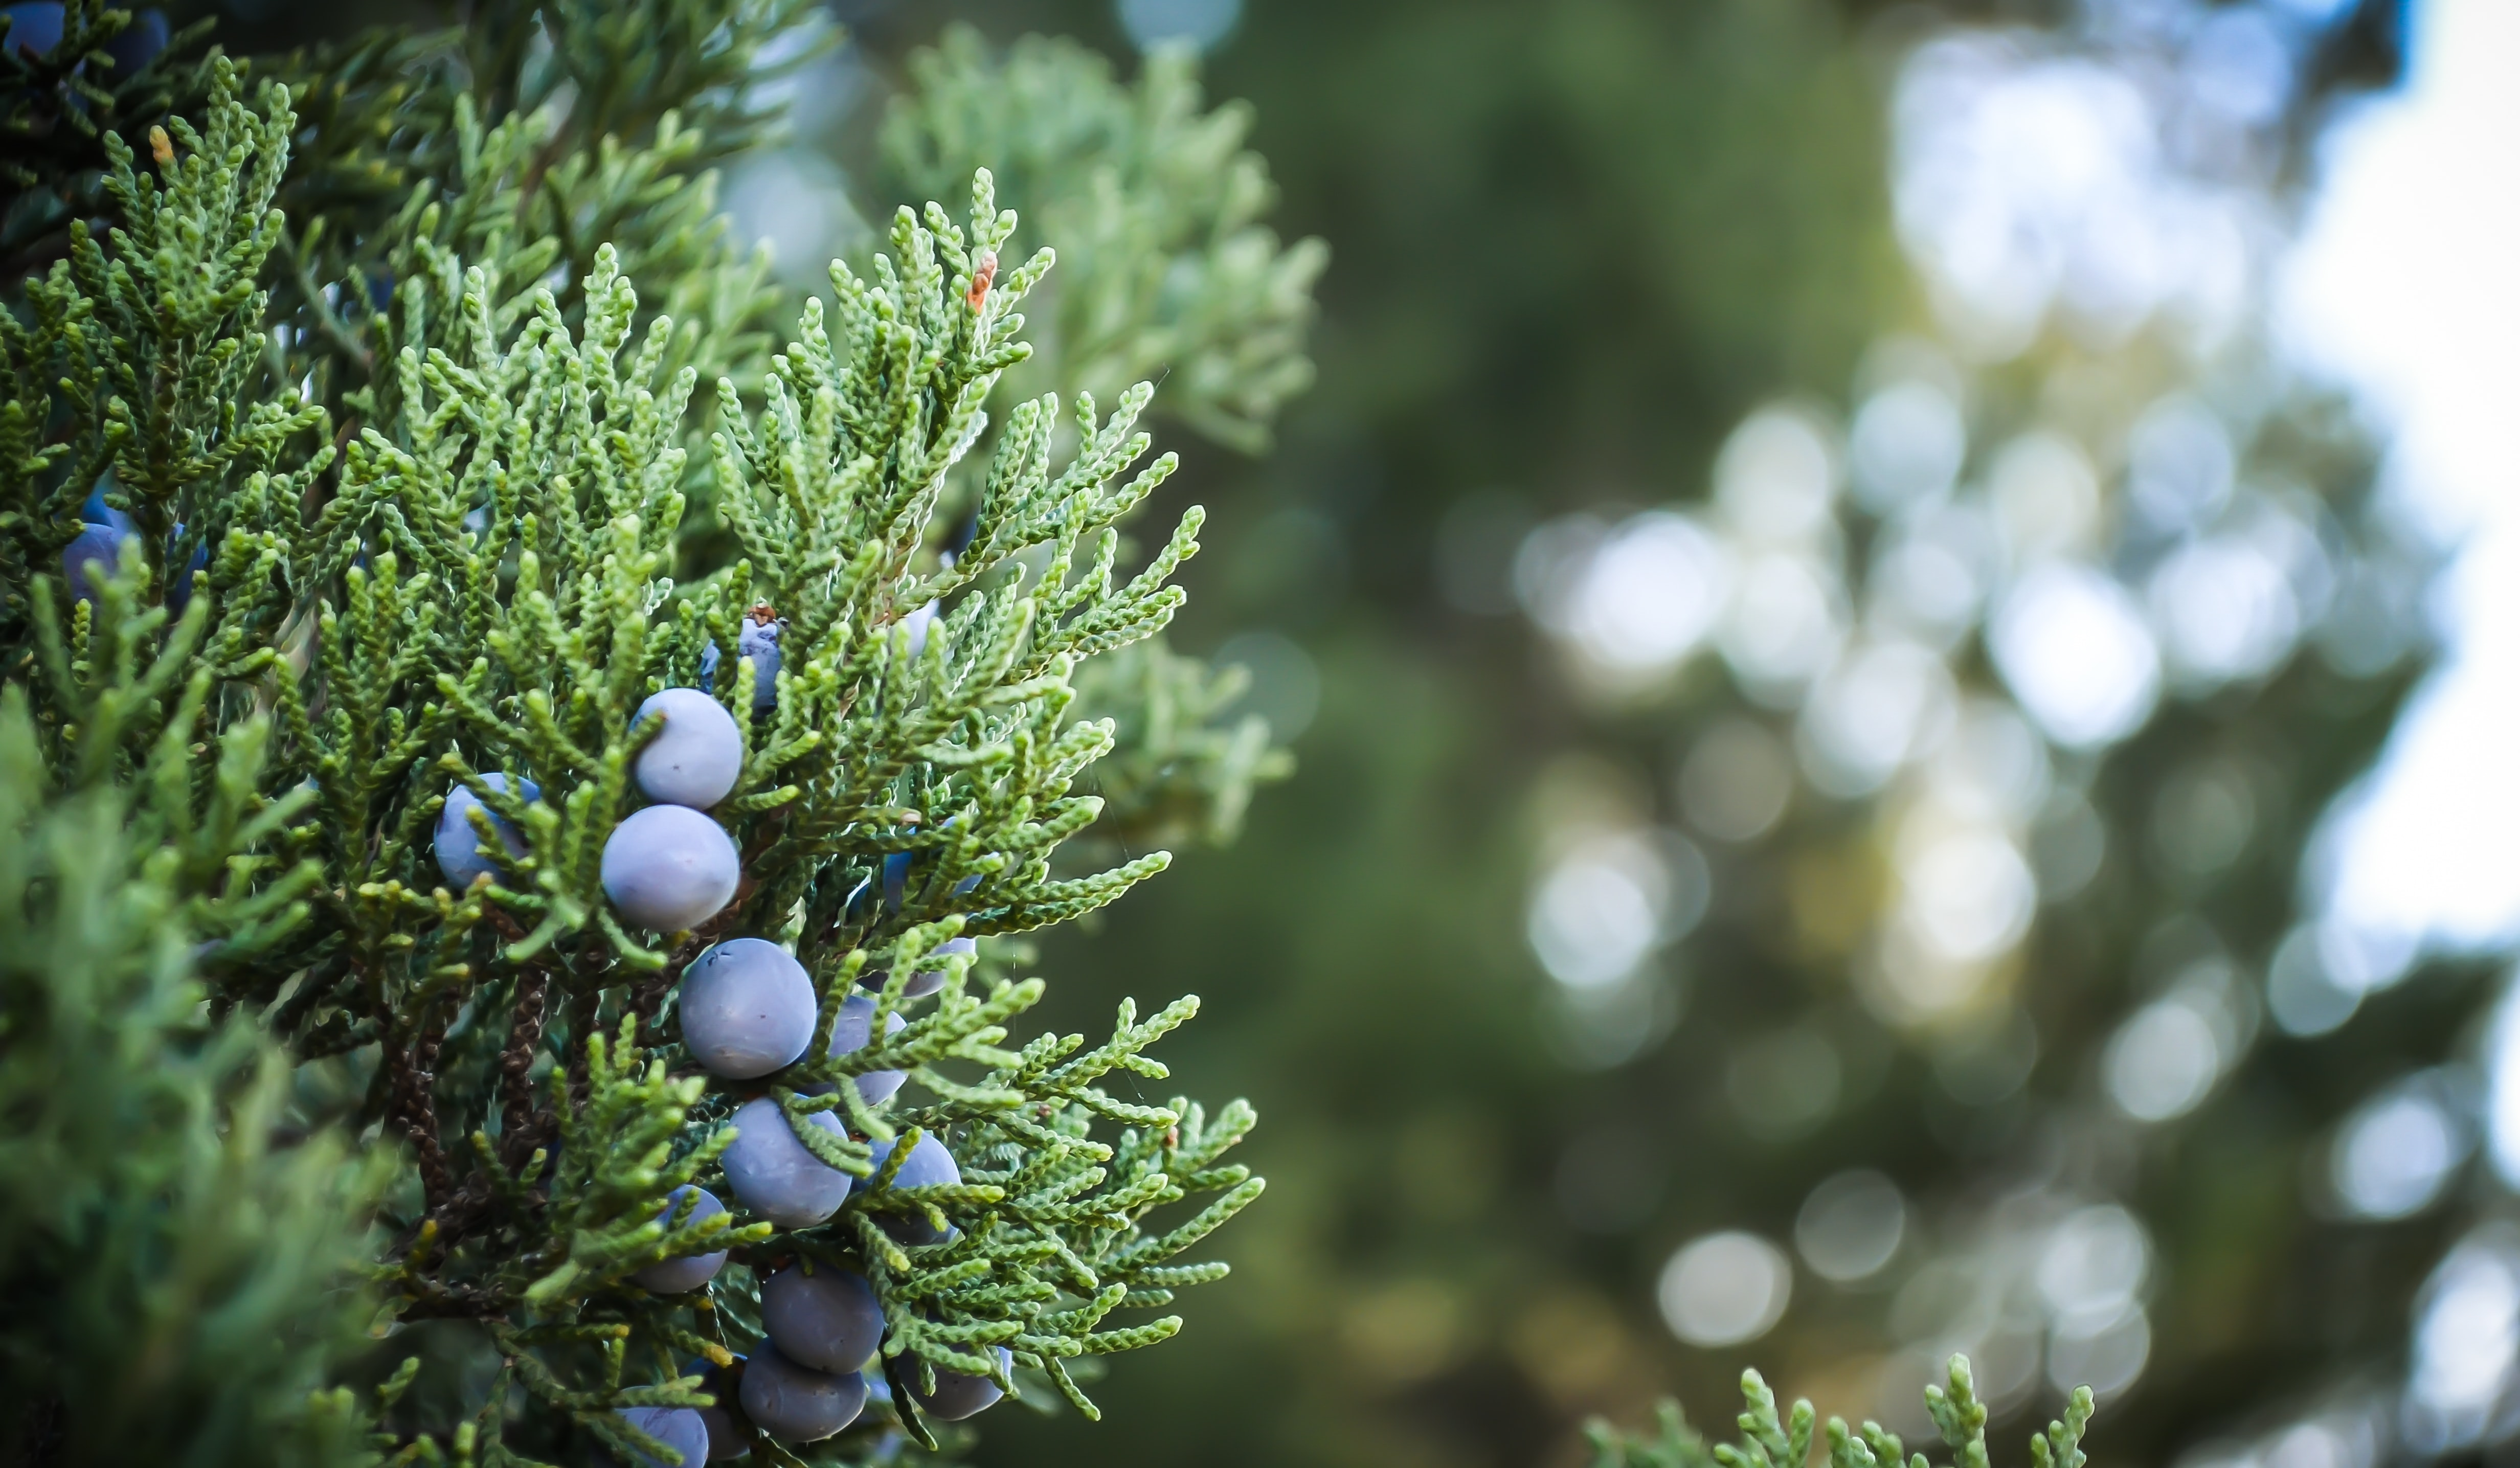 selective focus photography of purple berries